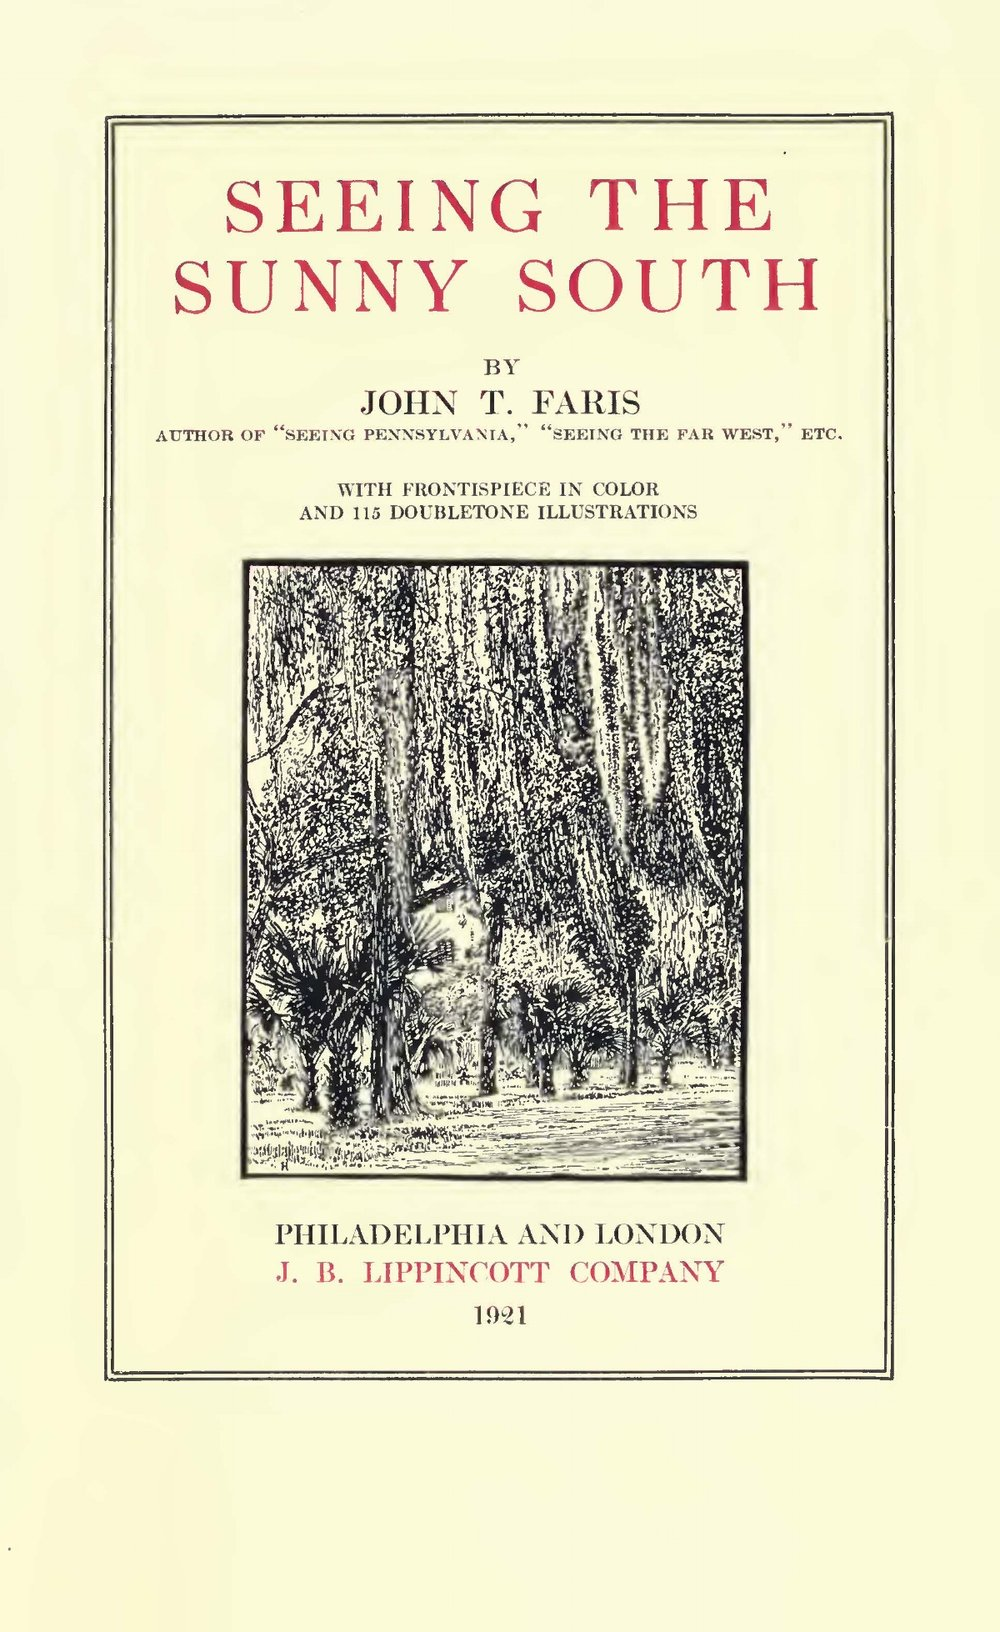 Faris, John Thomson, Seeing the Sunny South Title Page.jpg